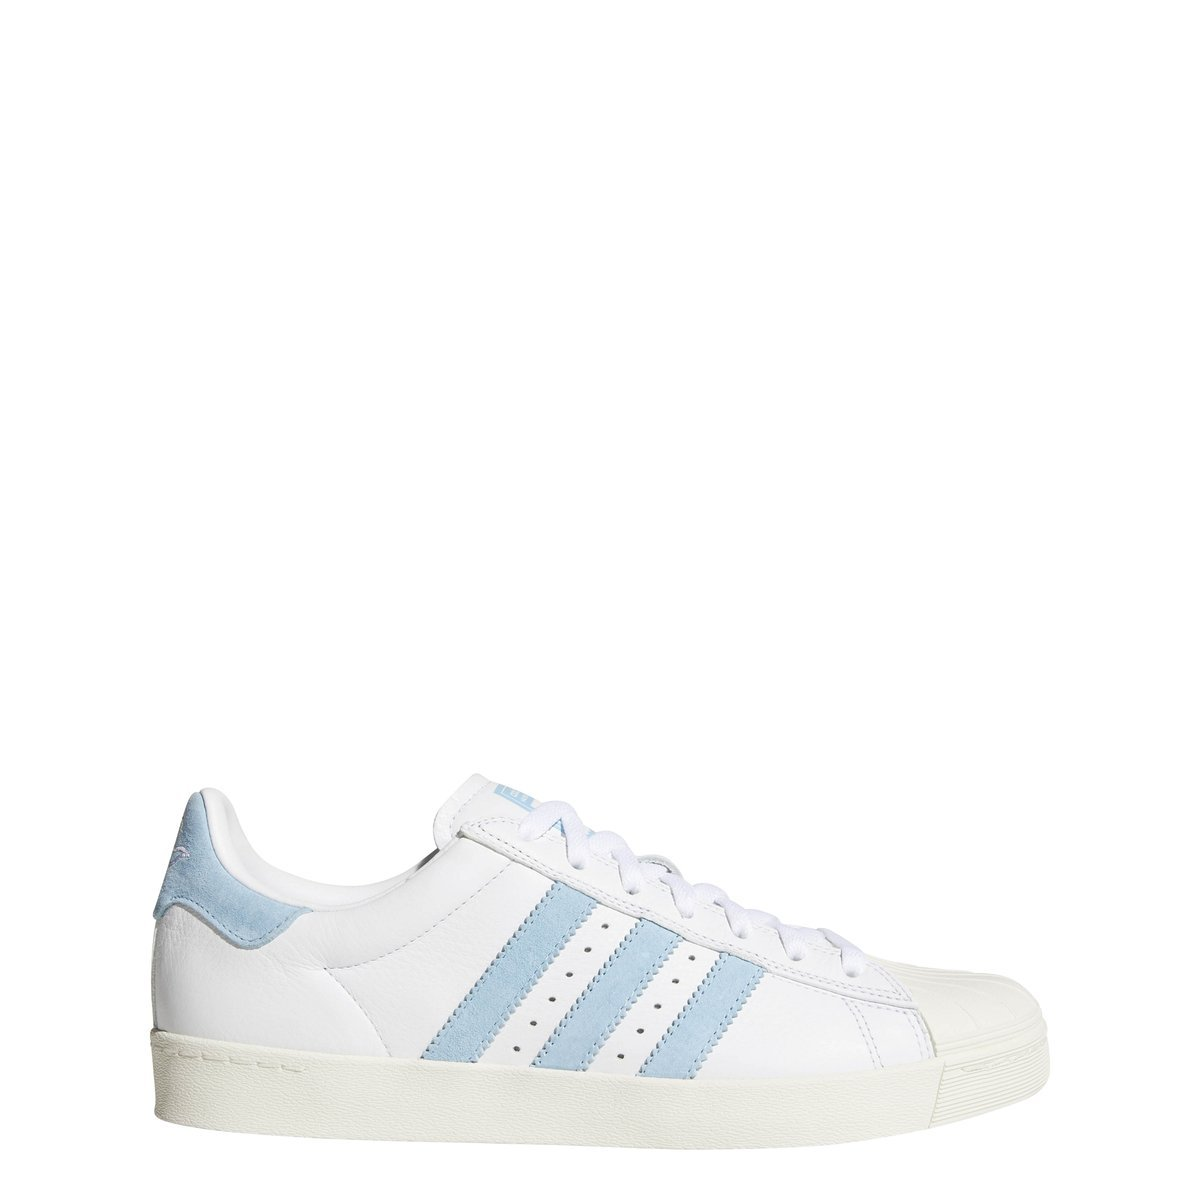 32560b4cc4ca8 Chaussure Adidas Skateboarding Superstar Vulc X Krooked White Custom  Chaussures pour homme Basket